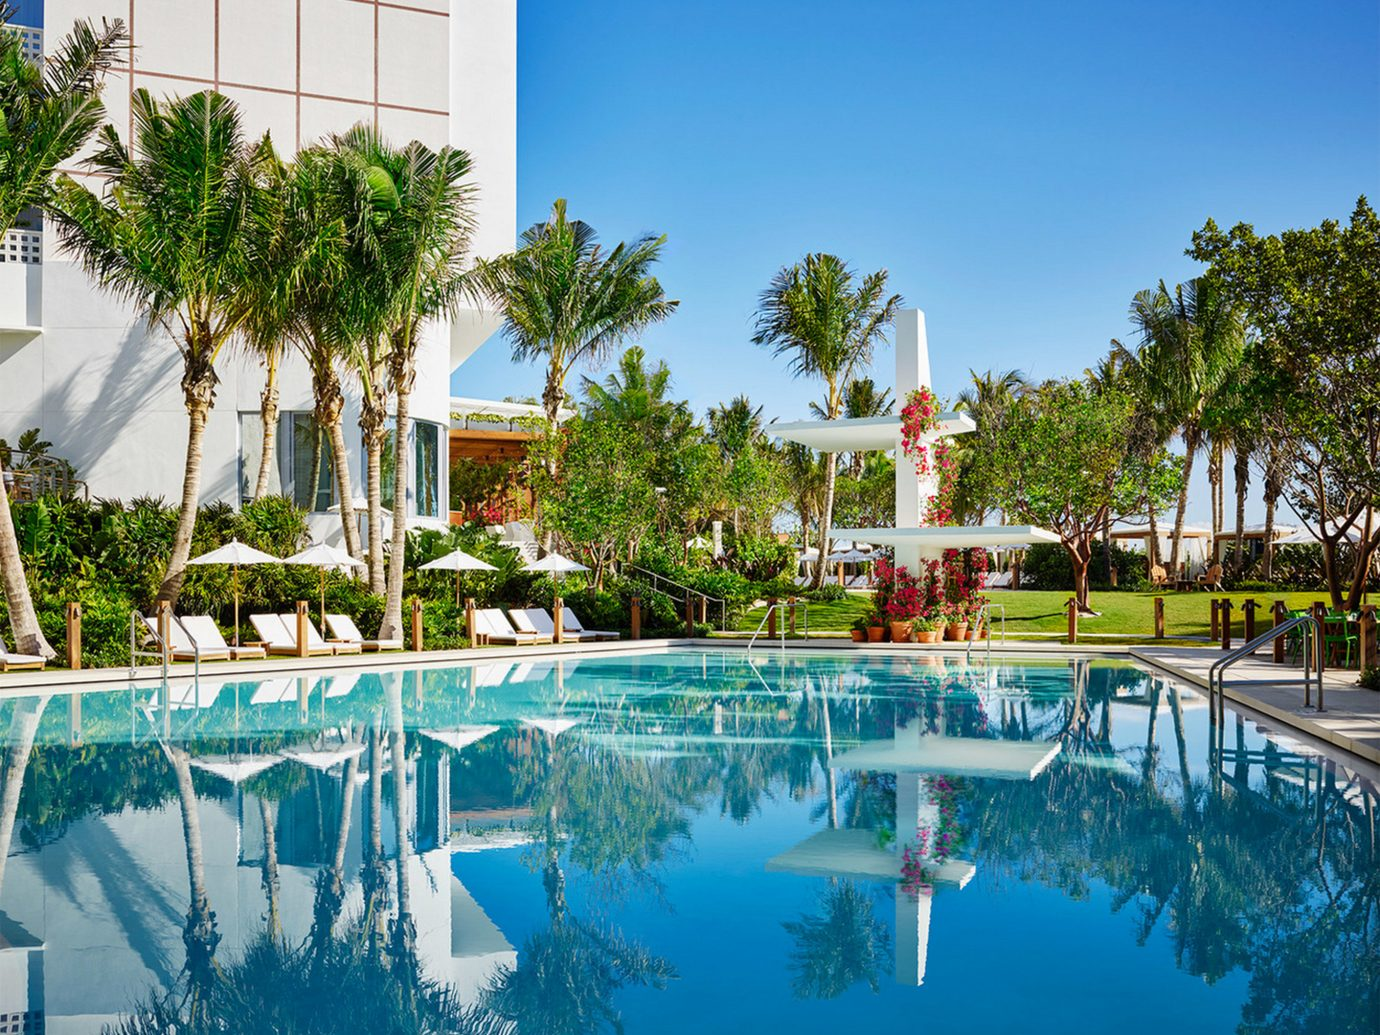 City Exterior Hotels Luxury Miami Miami Beach Modern Pool Trip Ideas tree outdoor swimming pool leisure property Resort estate vacation condominium reflecting pool resort town home real estate Villa backyard area Garden